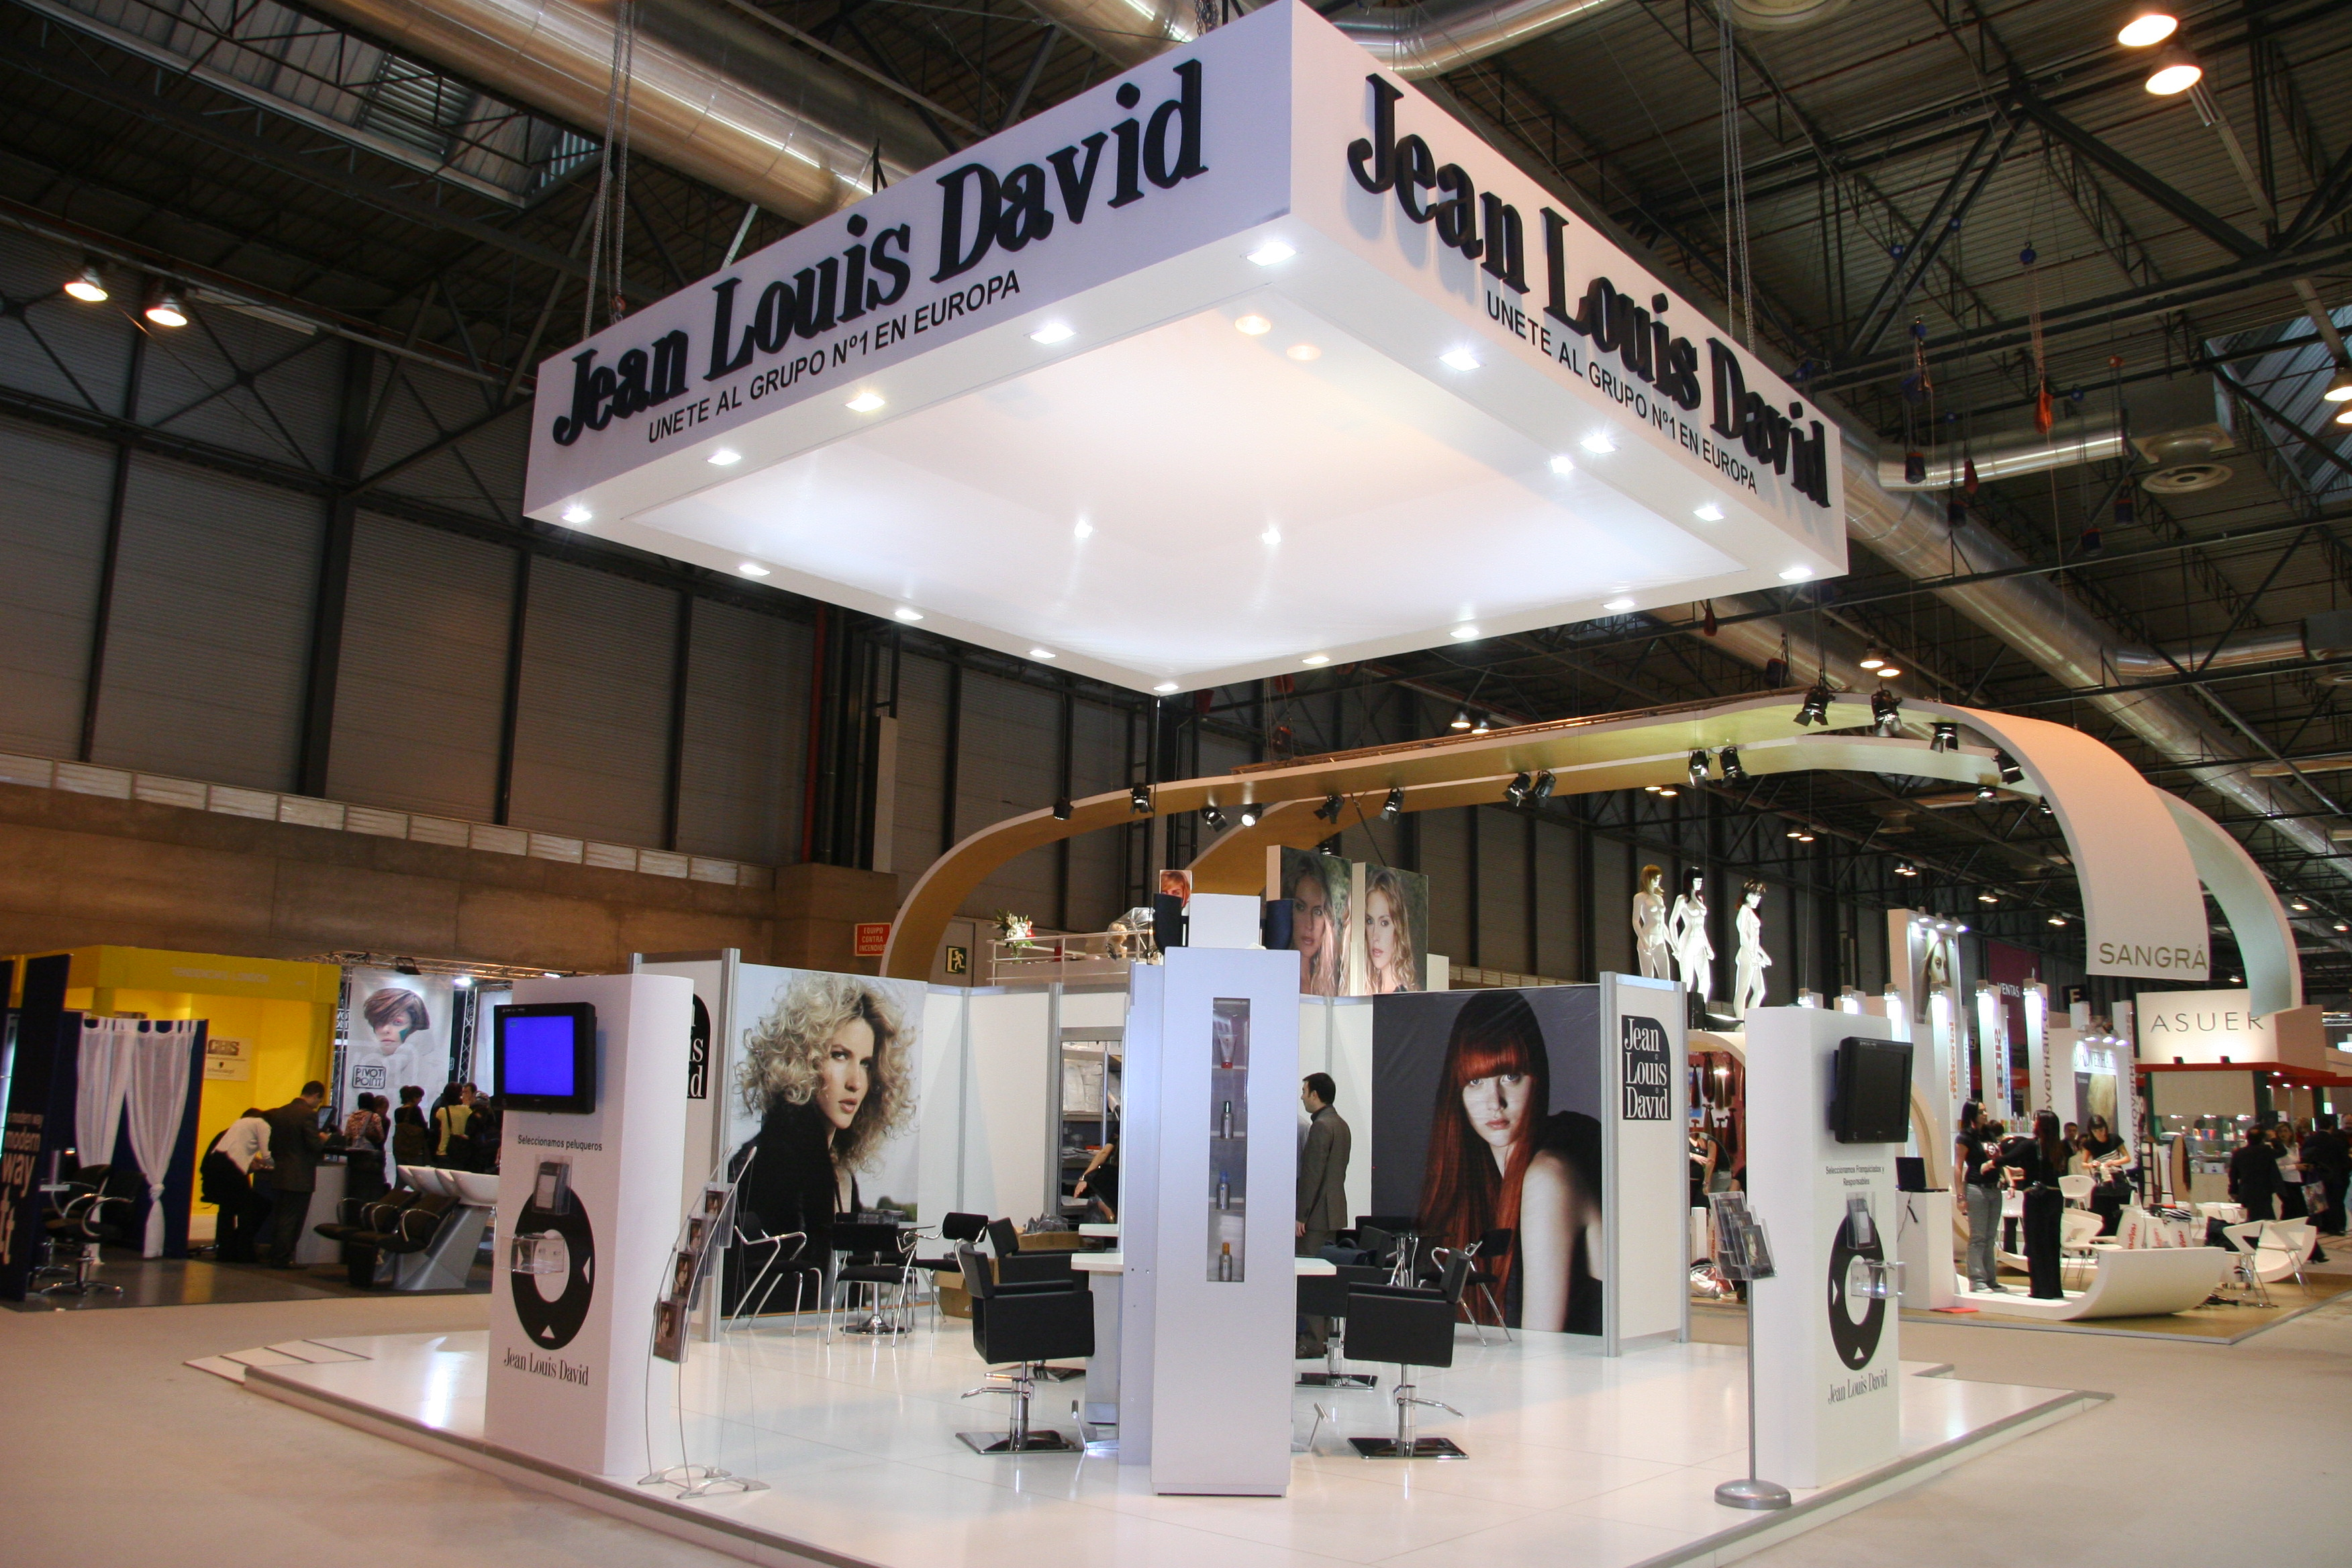 JEAN LOUIS DAVID, LOOK,MADRID 2012 (2)